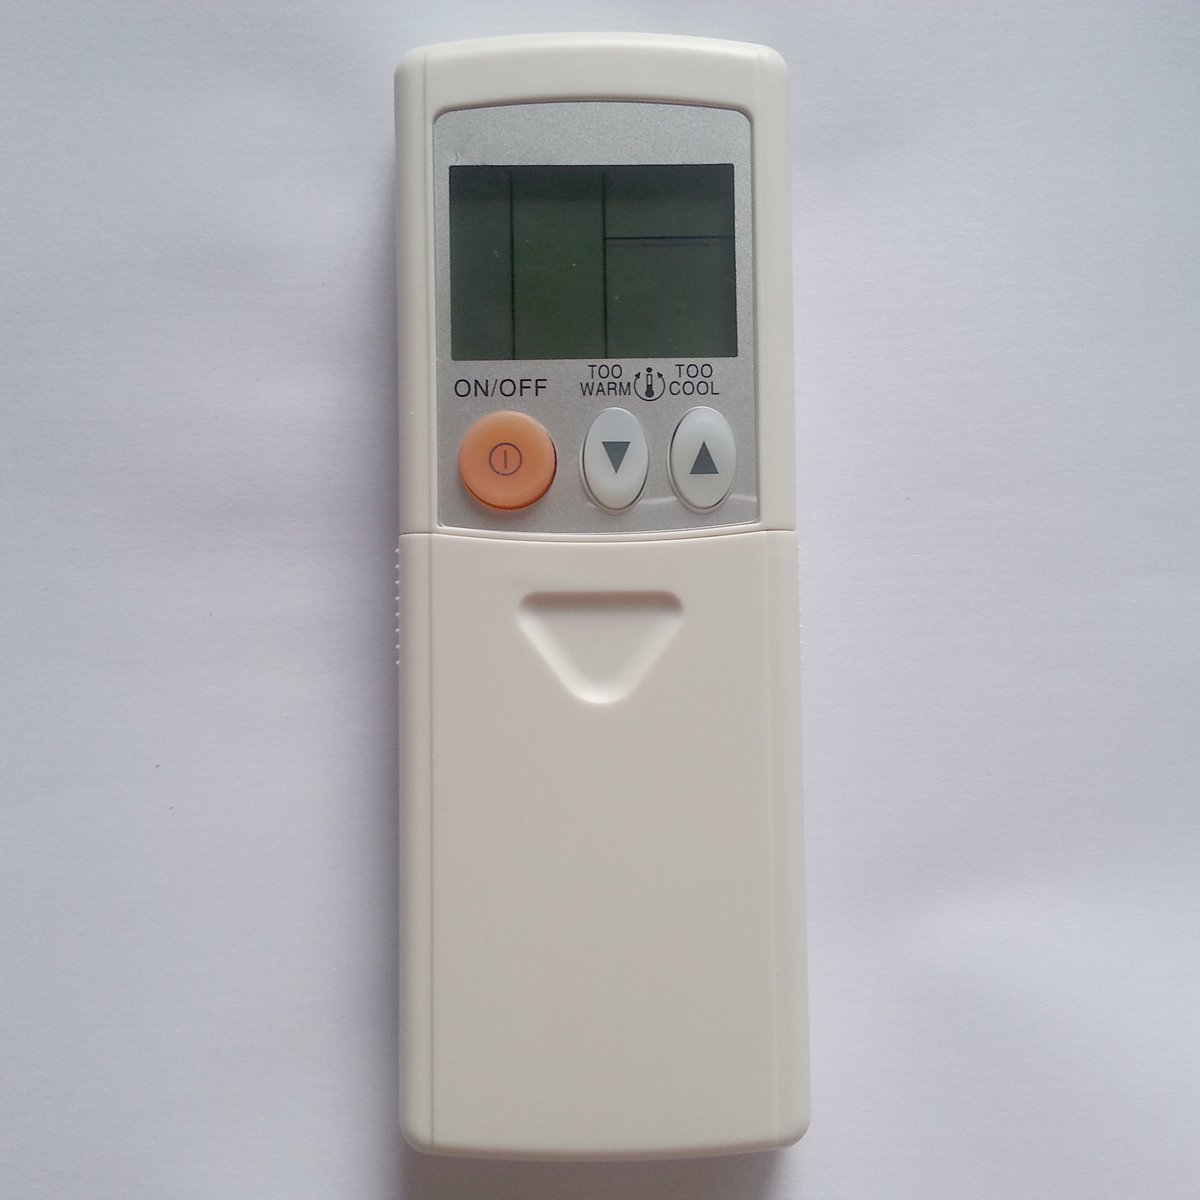 Mitsubishi Electric Air Conditioner Remote Control Km05 Km05a Km05b Km05c Km05d Km05e Km05f Km05g